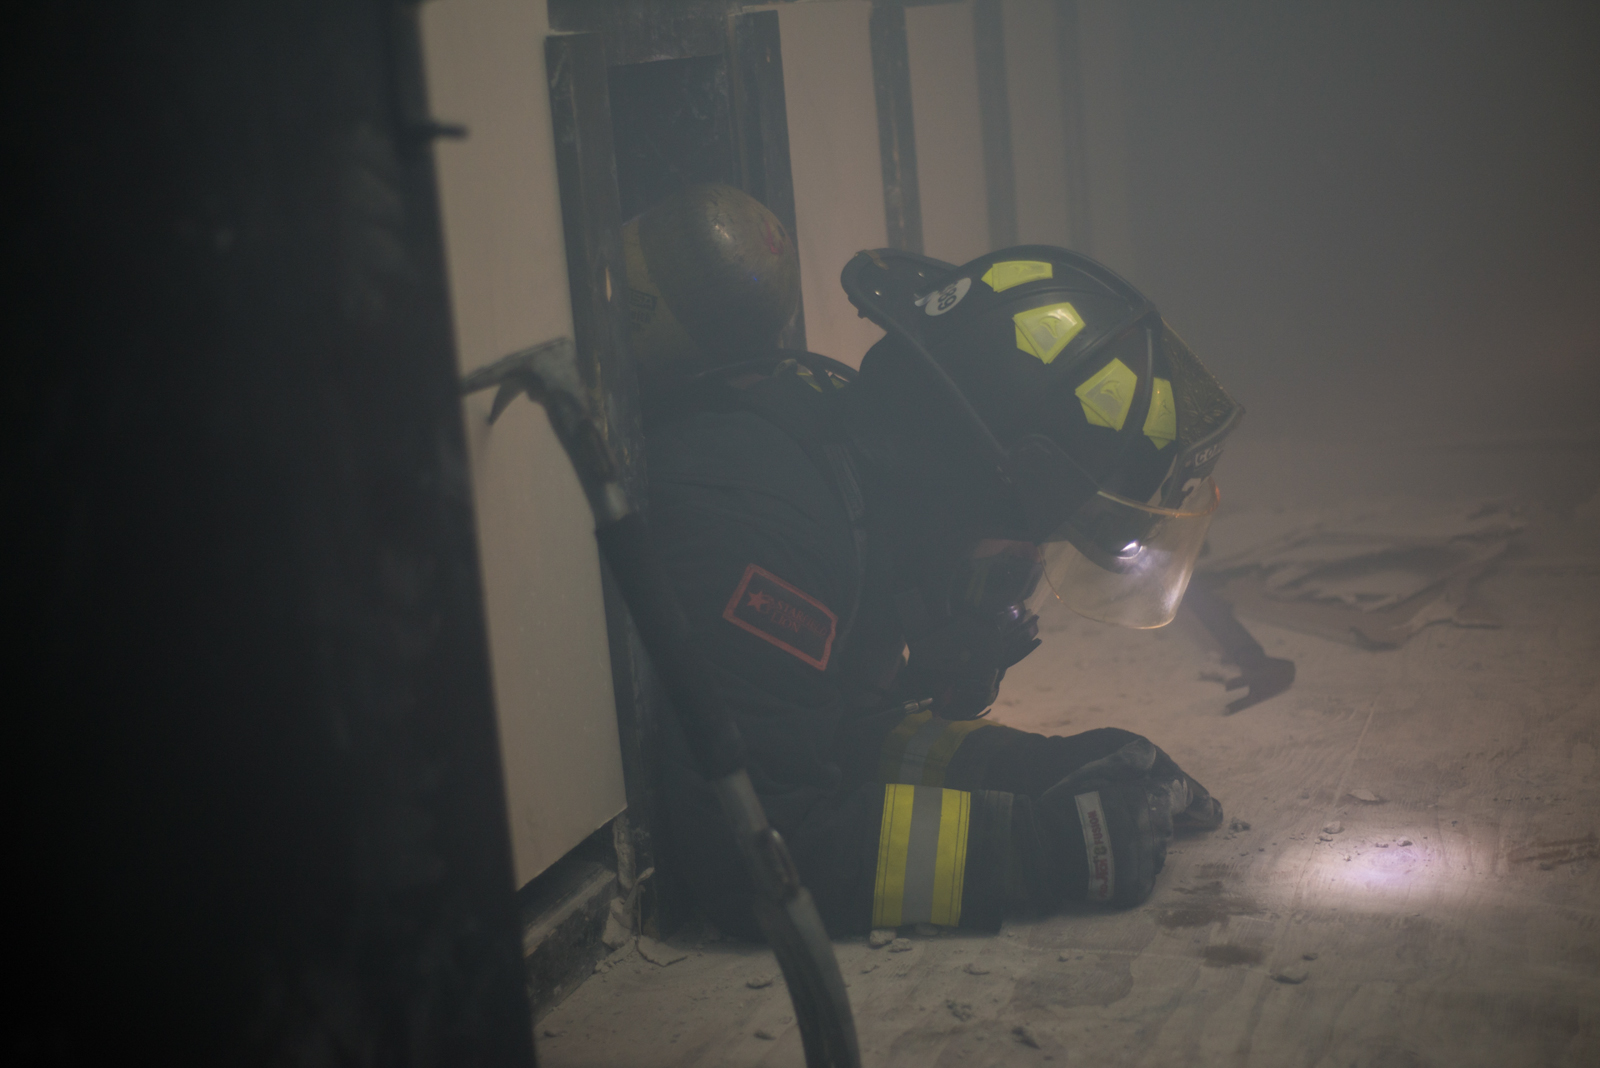 Teaching firefighters to save themselves!